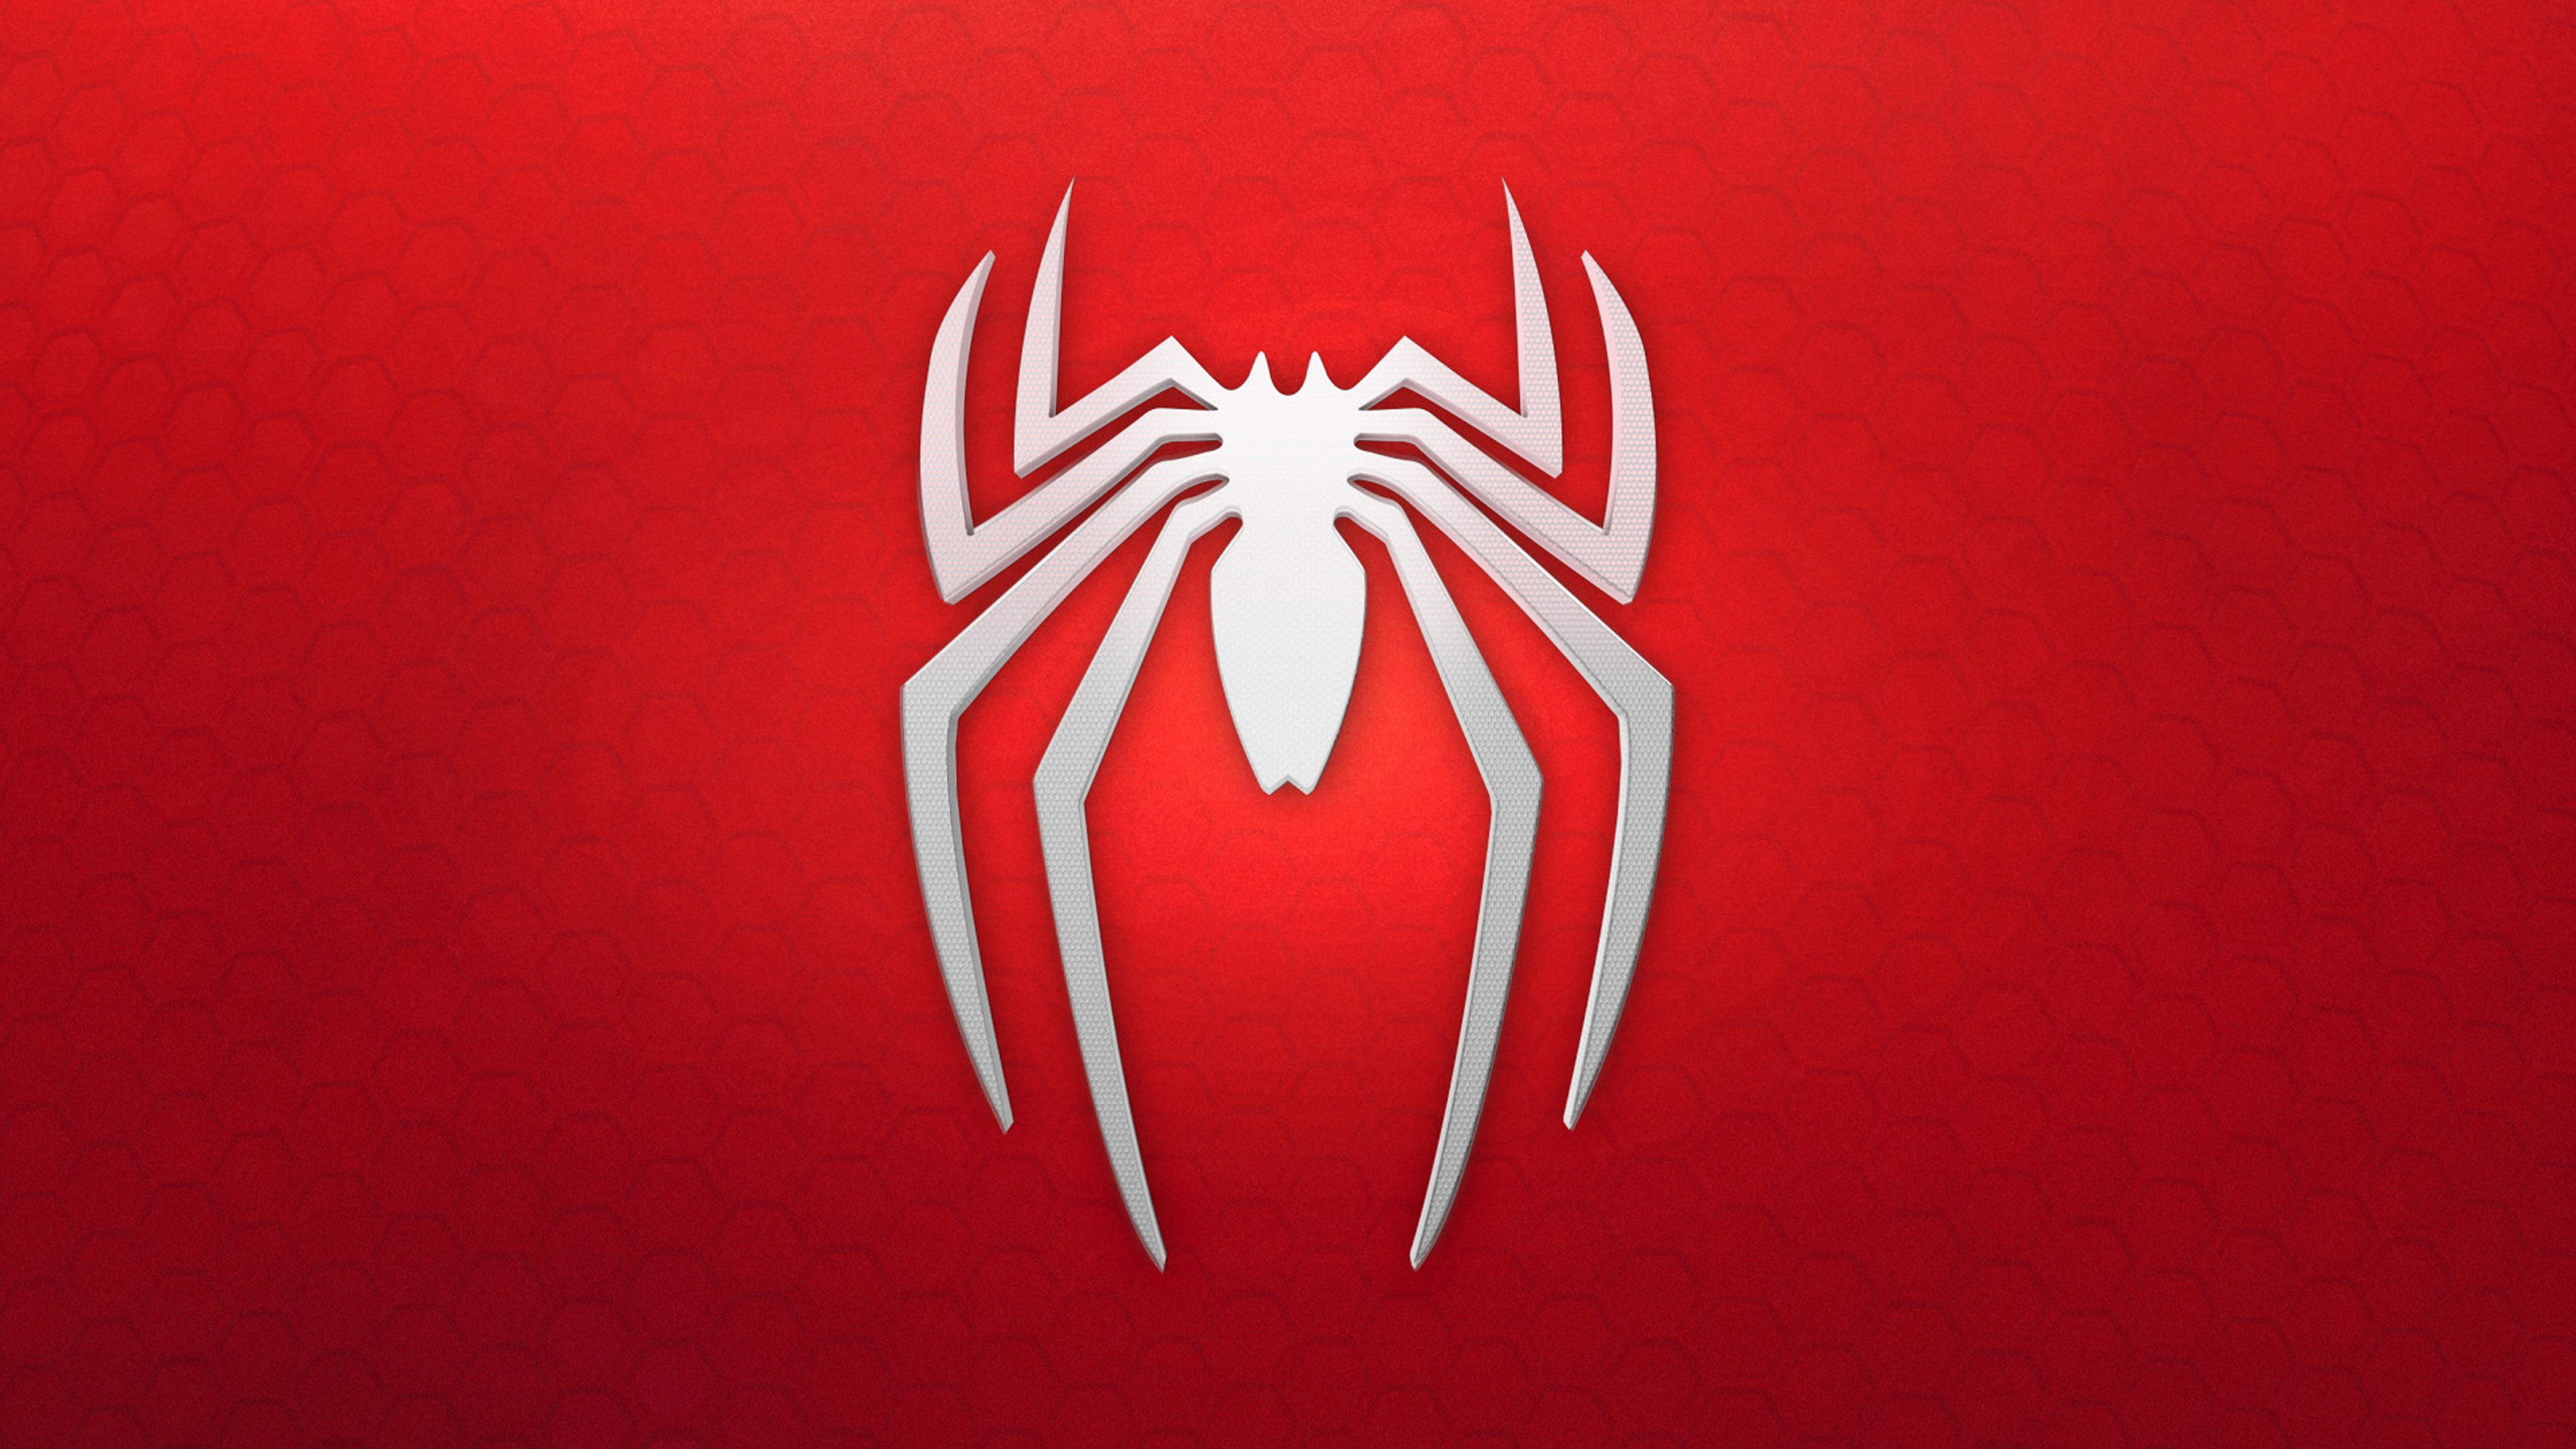 Spiderman 4k Logo Background Super Heroes Wallpapers Spiderman Wallpapers Red Wallpapers Movies Wallpapers Logo Wall Hero Wallpaper Spiderman Ps4 Spiderman